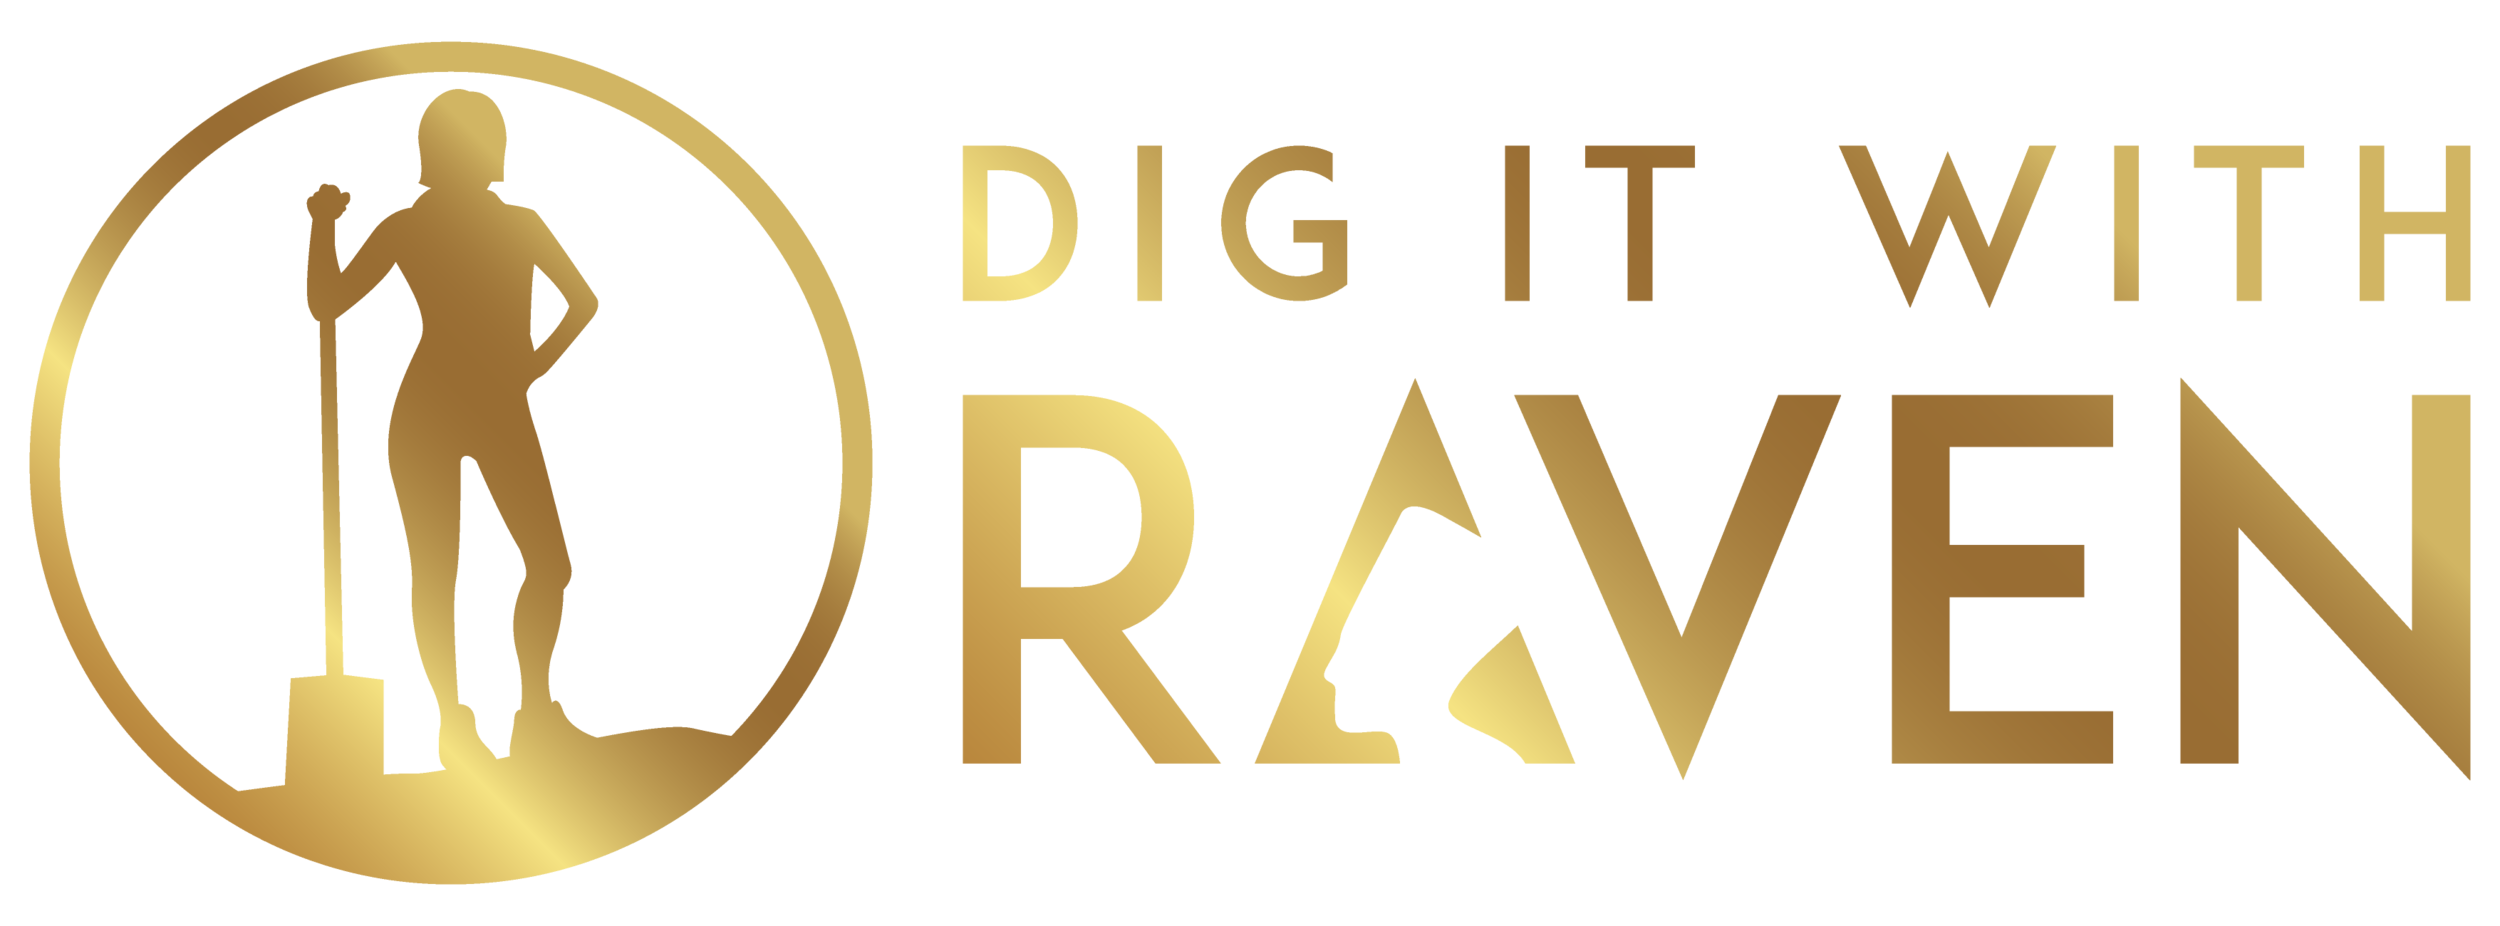 Dig-it-with-raven-logo-02.png